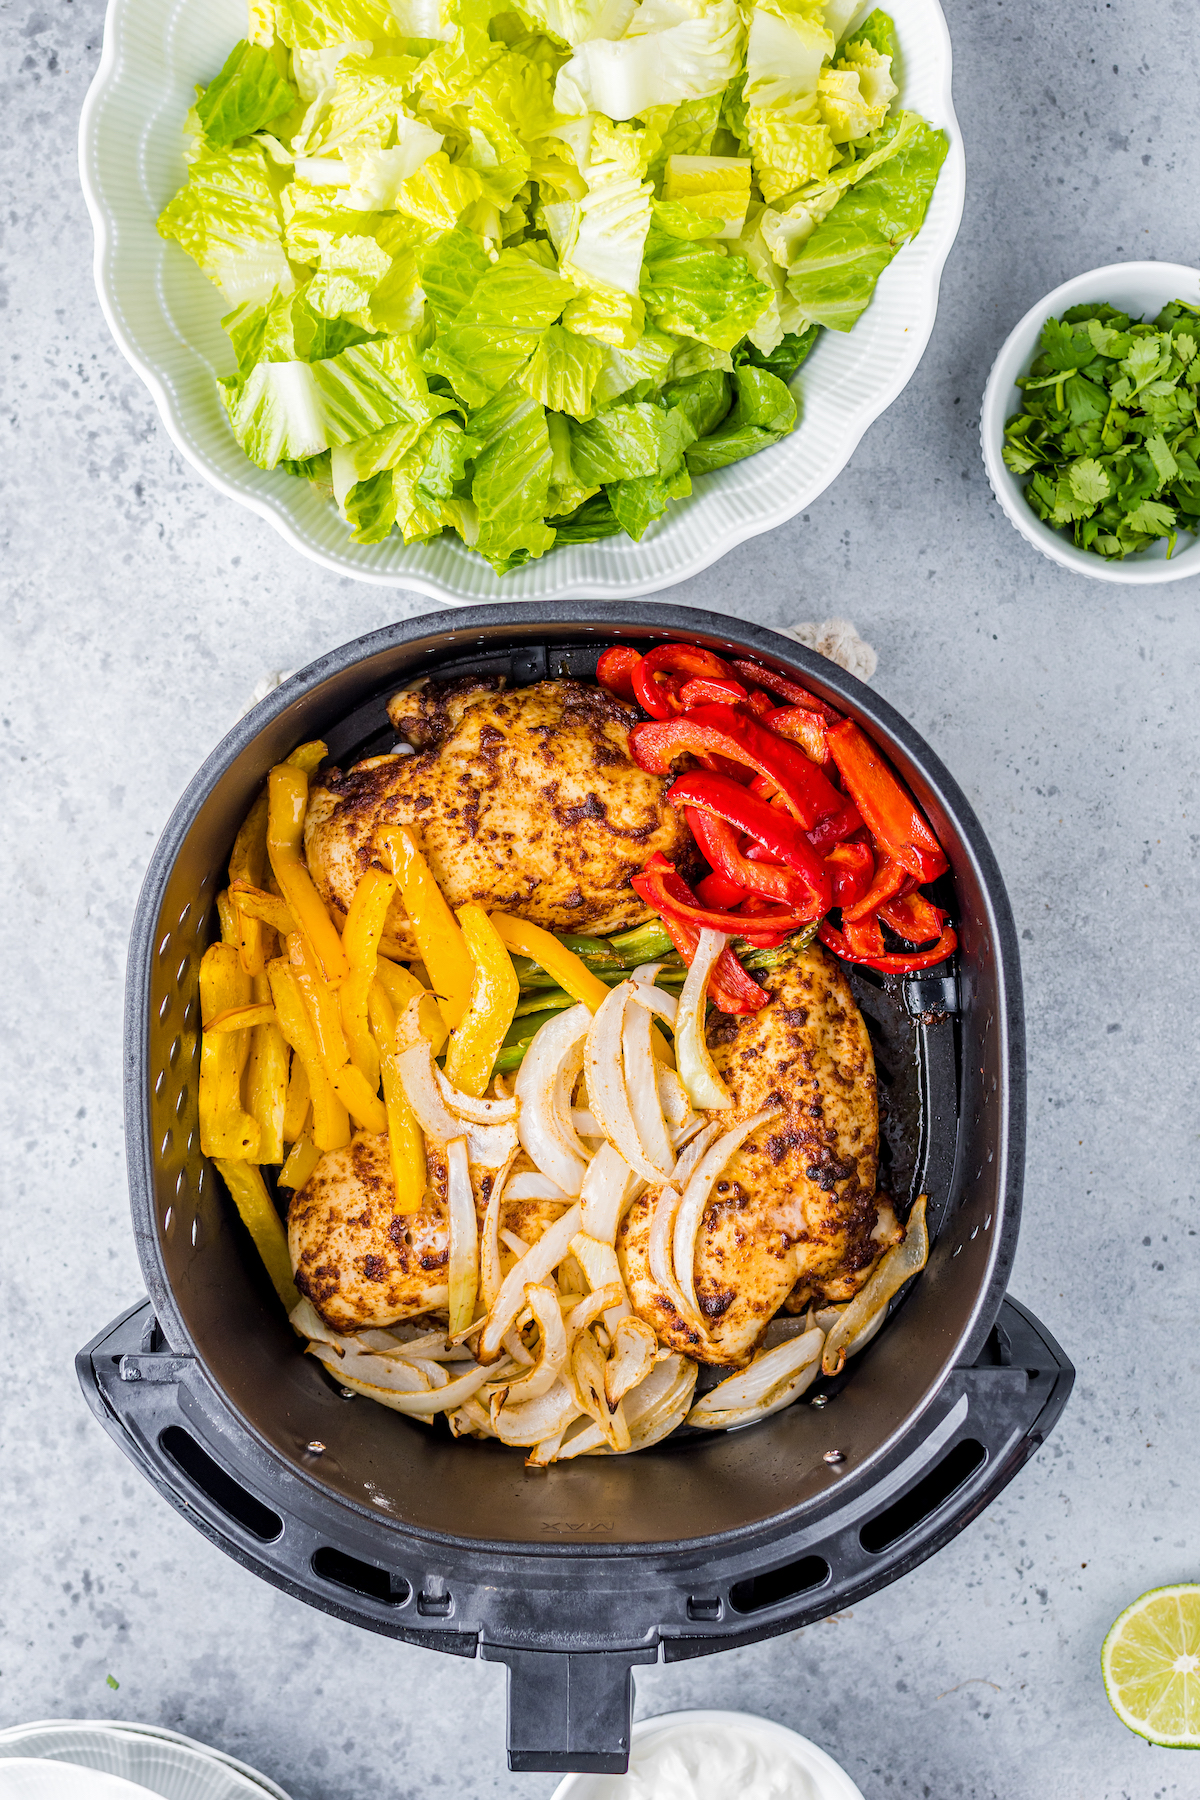 Air fryer with chicken and vegetables in it.